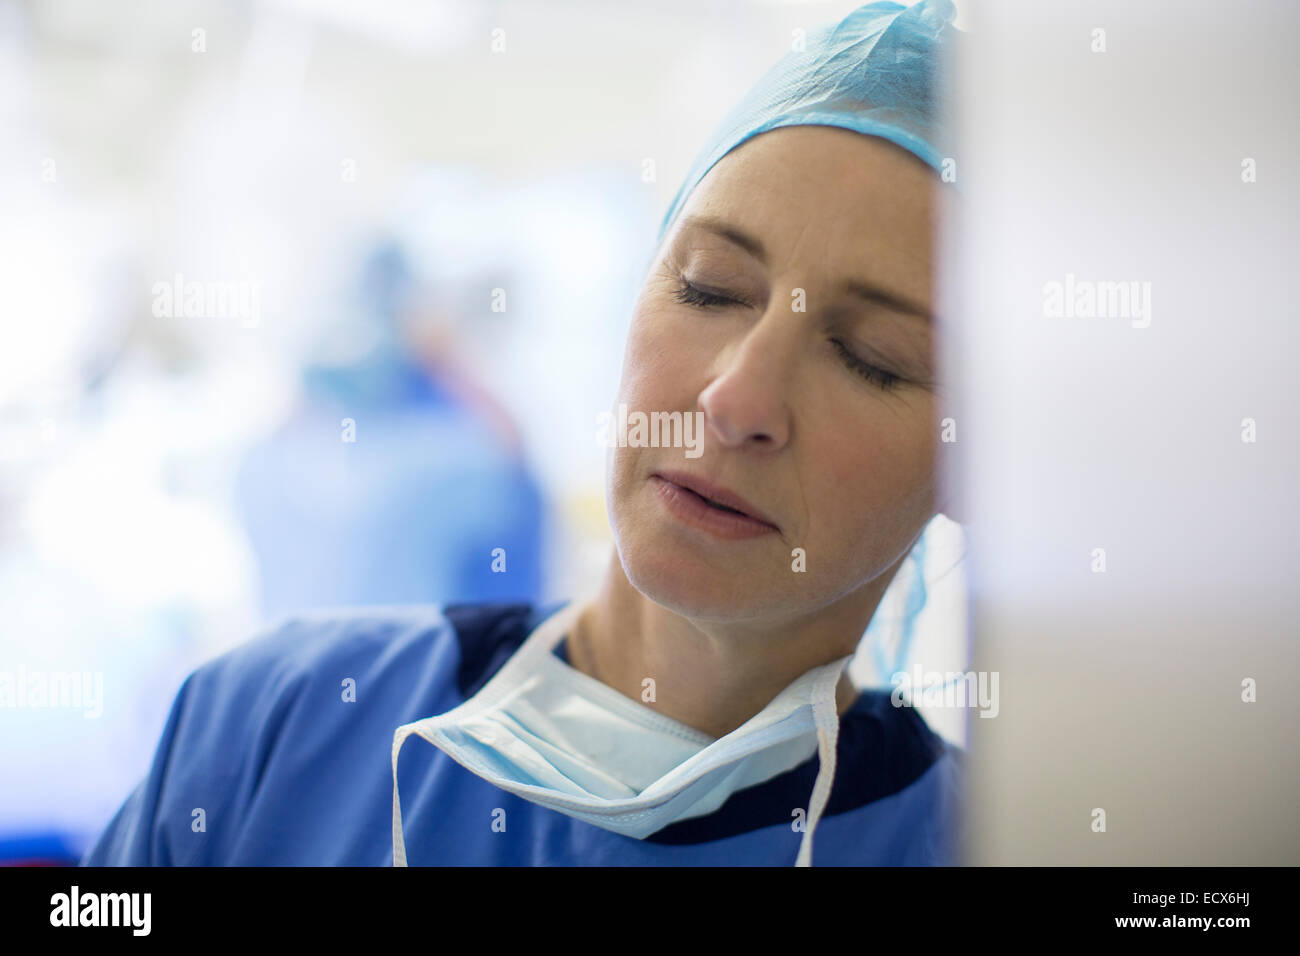 Female surgeon falling asleep in hospital - Stock Image